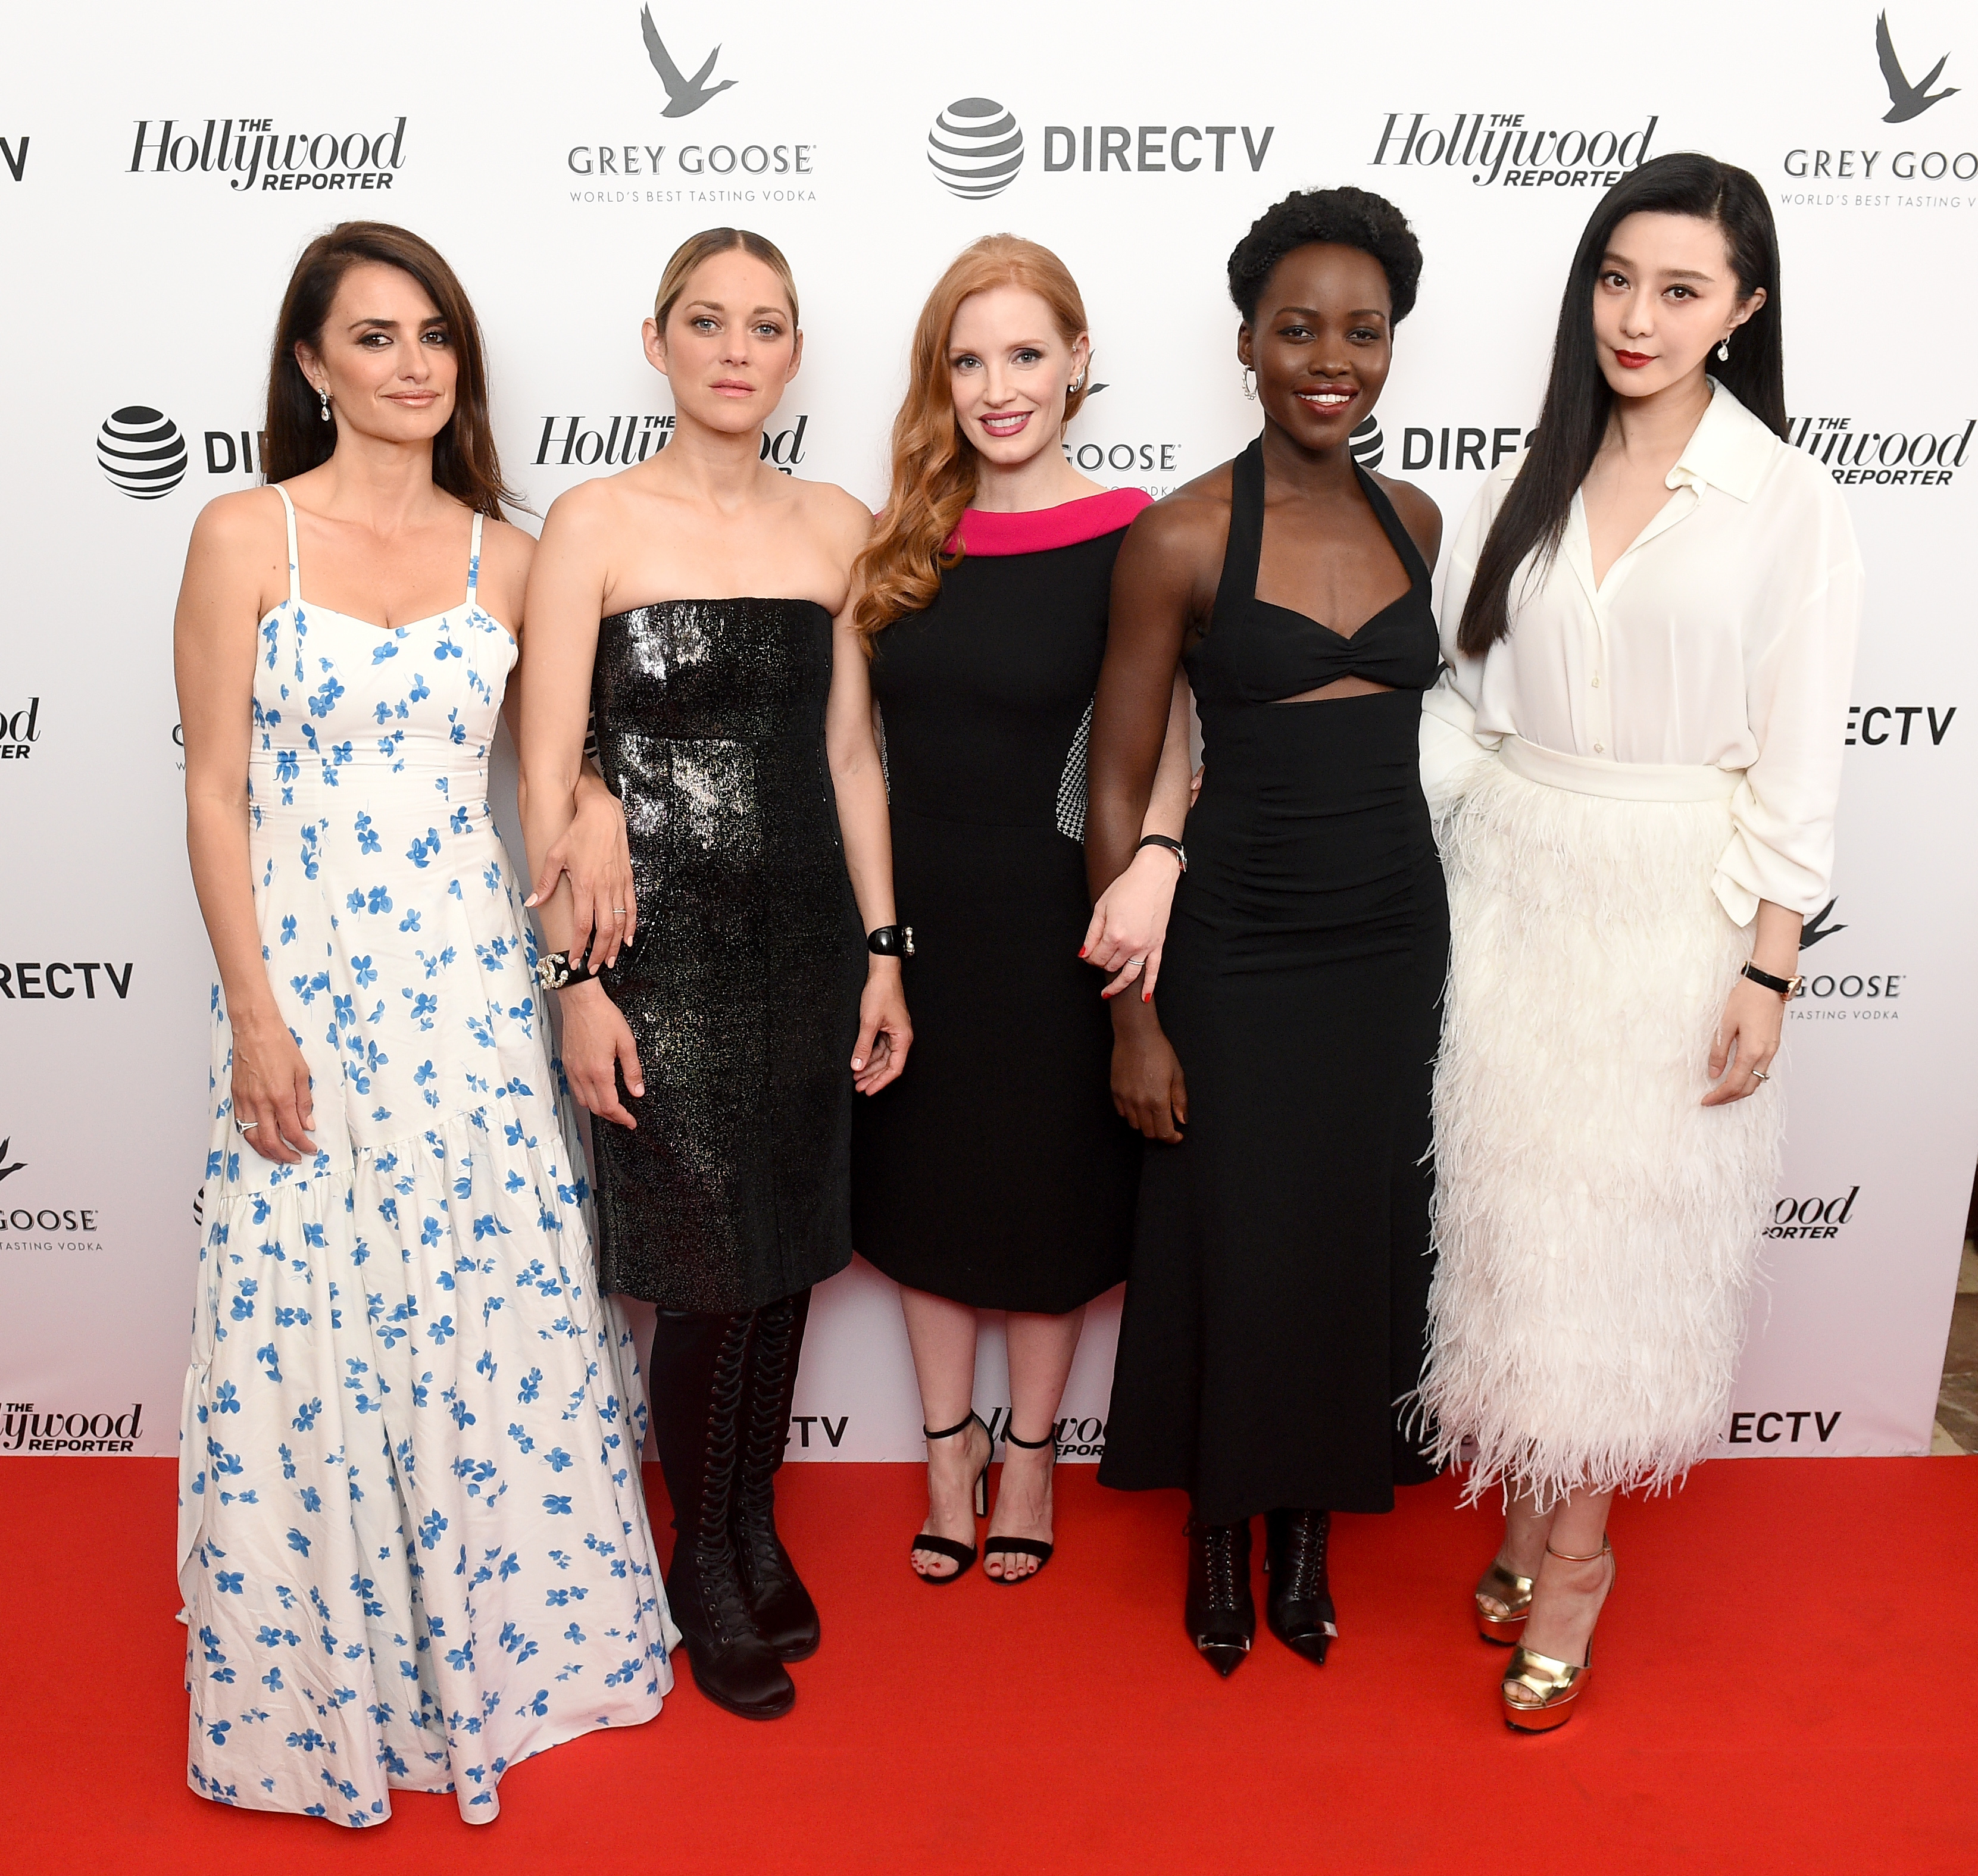 Penelope Cruz, Marion Cotillard, Jessica Chastain, Lupita Nyong'o, and Fan Bingbing at the '355' cocktail party, with DIRECTV and The Hollywood Reporter on the Grey Goose Terrace during the 71st Cannes Film Festival on May 10, 2018.